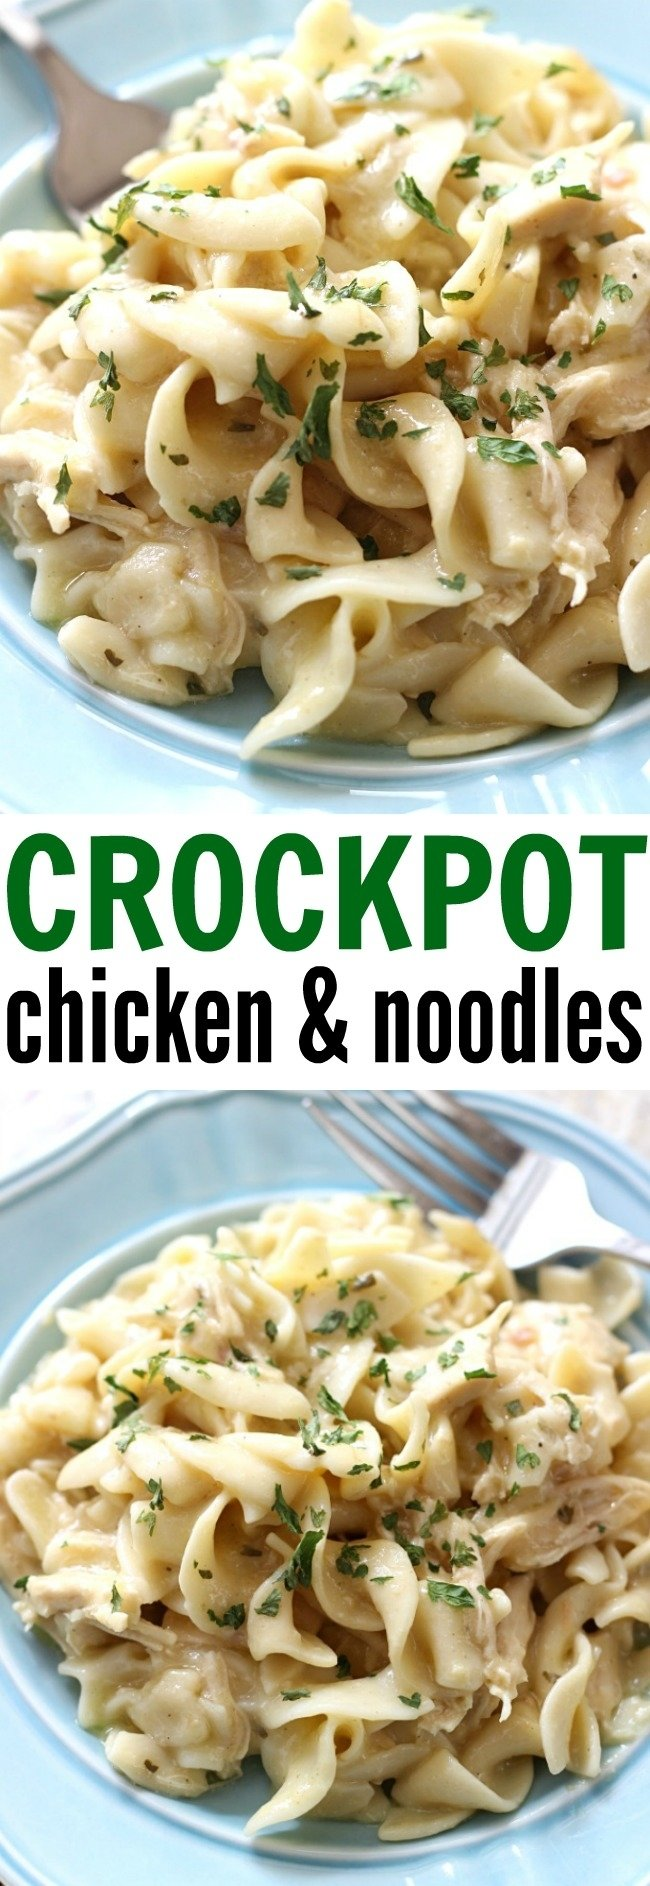 10 Fantastic Crock Pot Ideas For Chicken crockpot chicken and noodles belle of the kitchen 2020